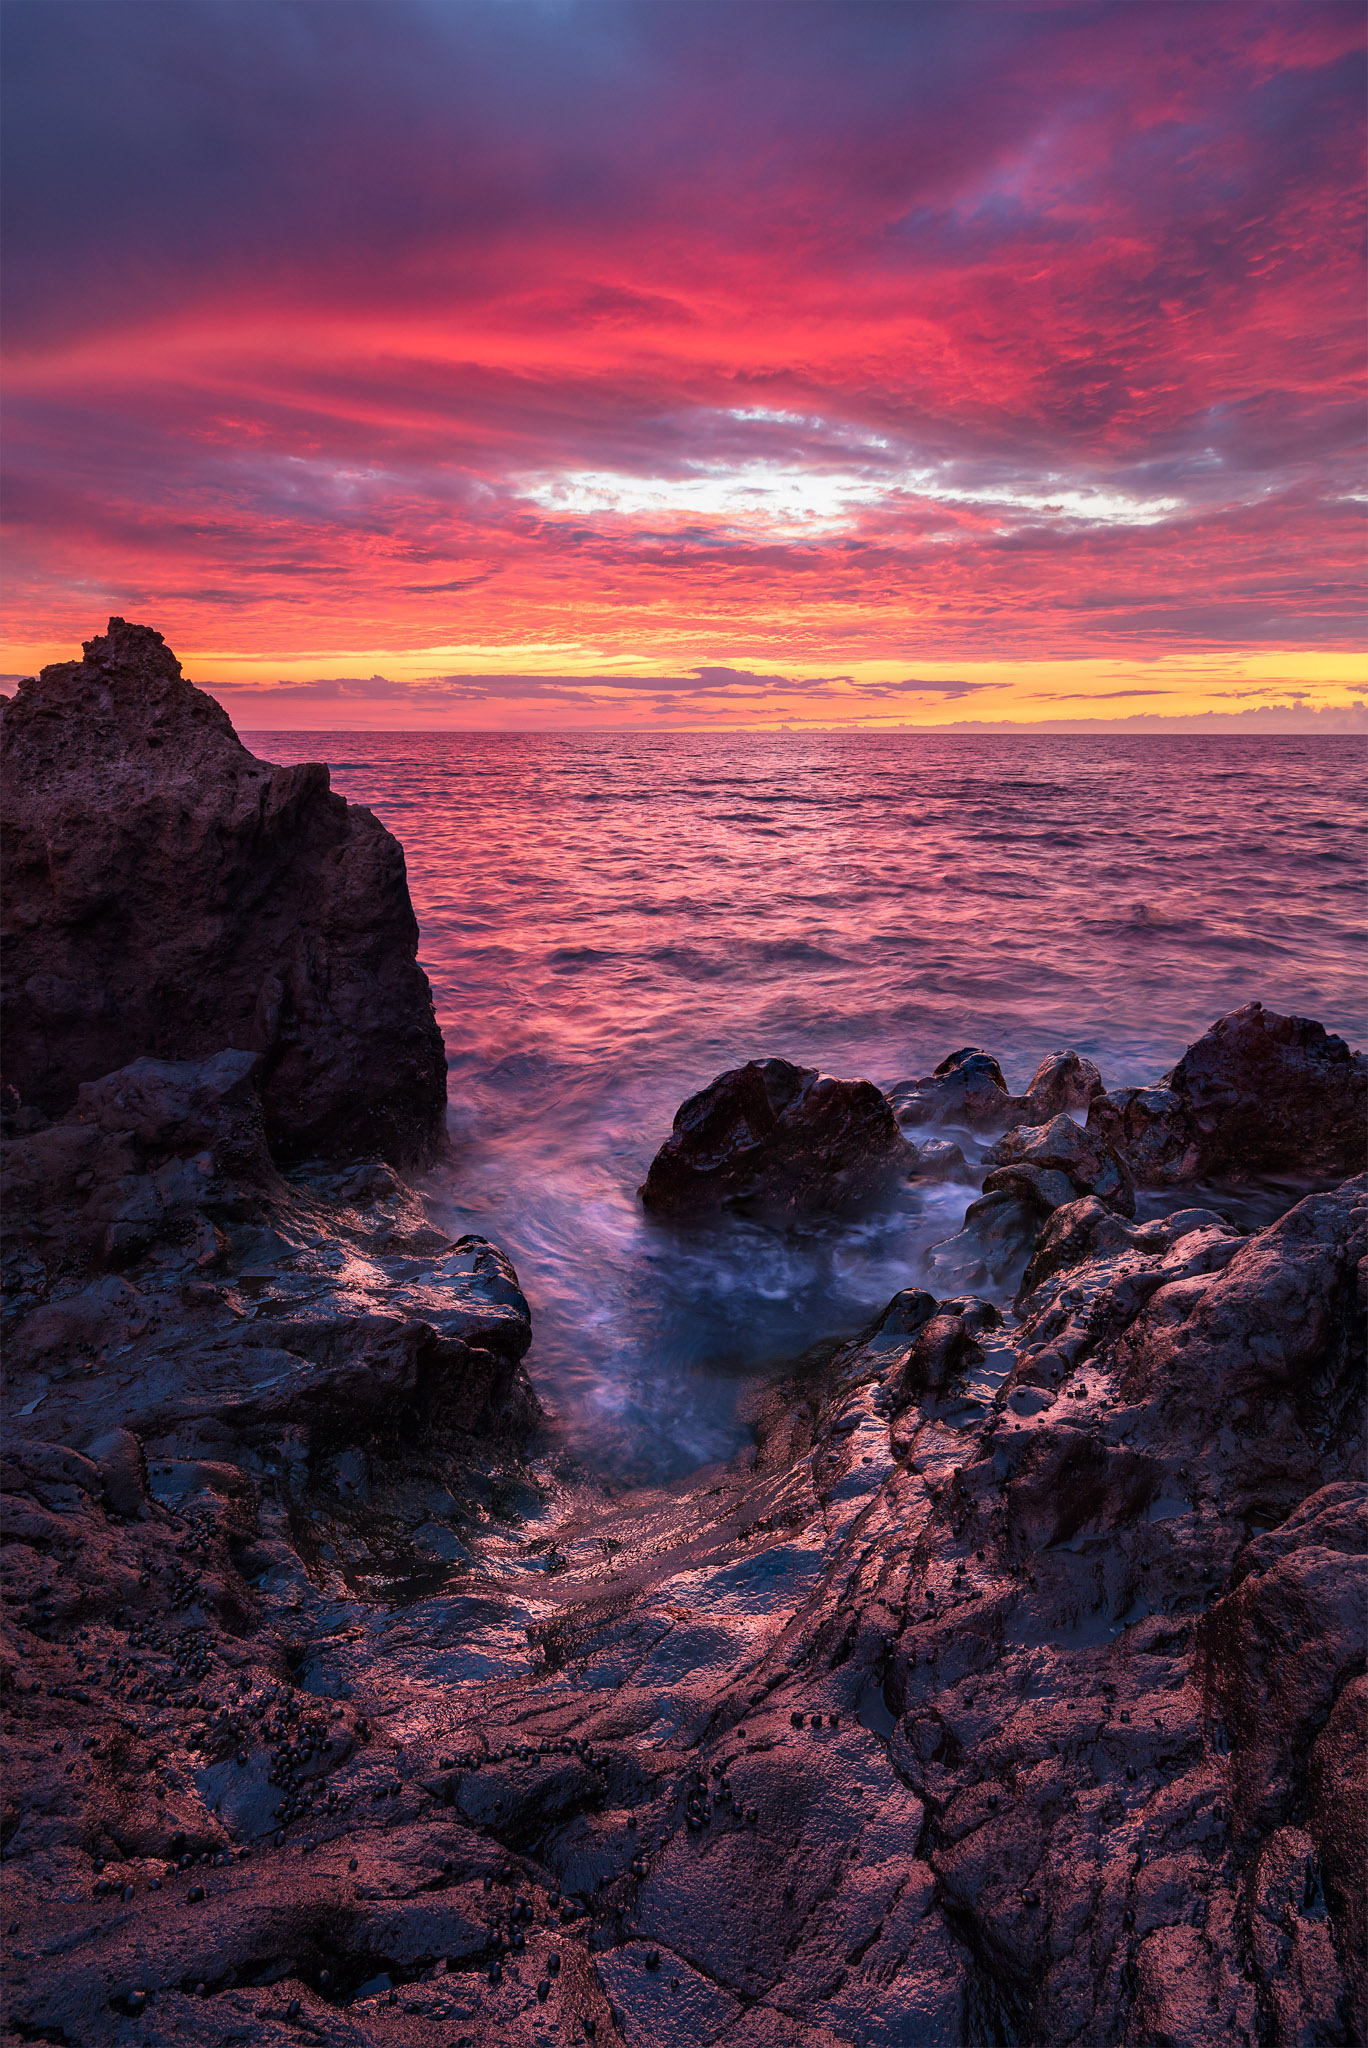 In this photo captured in Waikoloa on the Big Island of Hawaii, an explosion of colors ignited over the ocean. The lava rock...